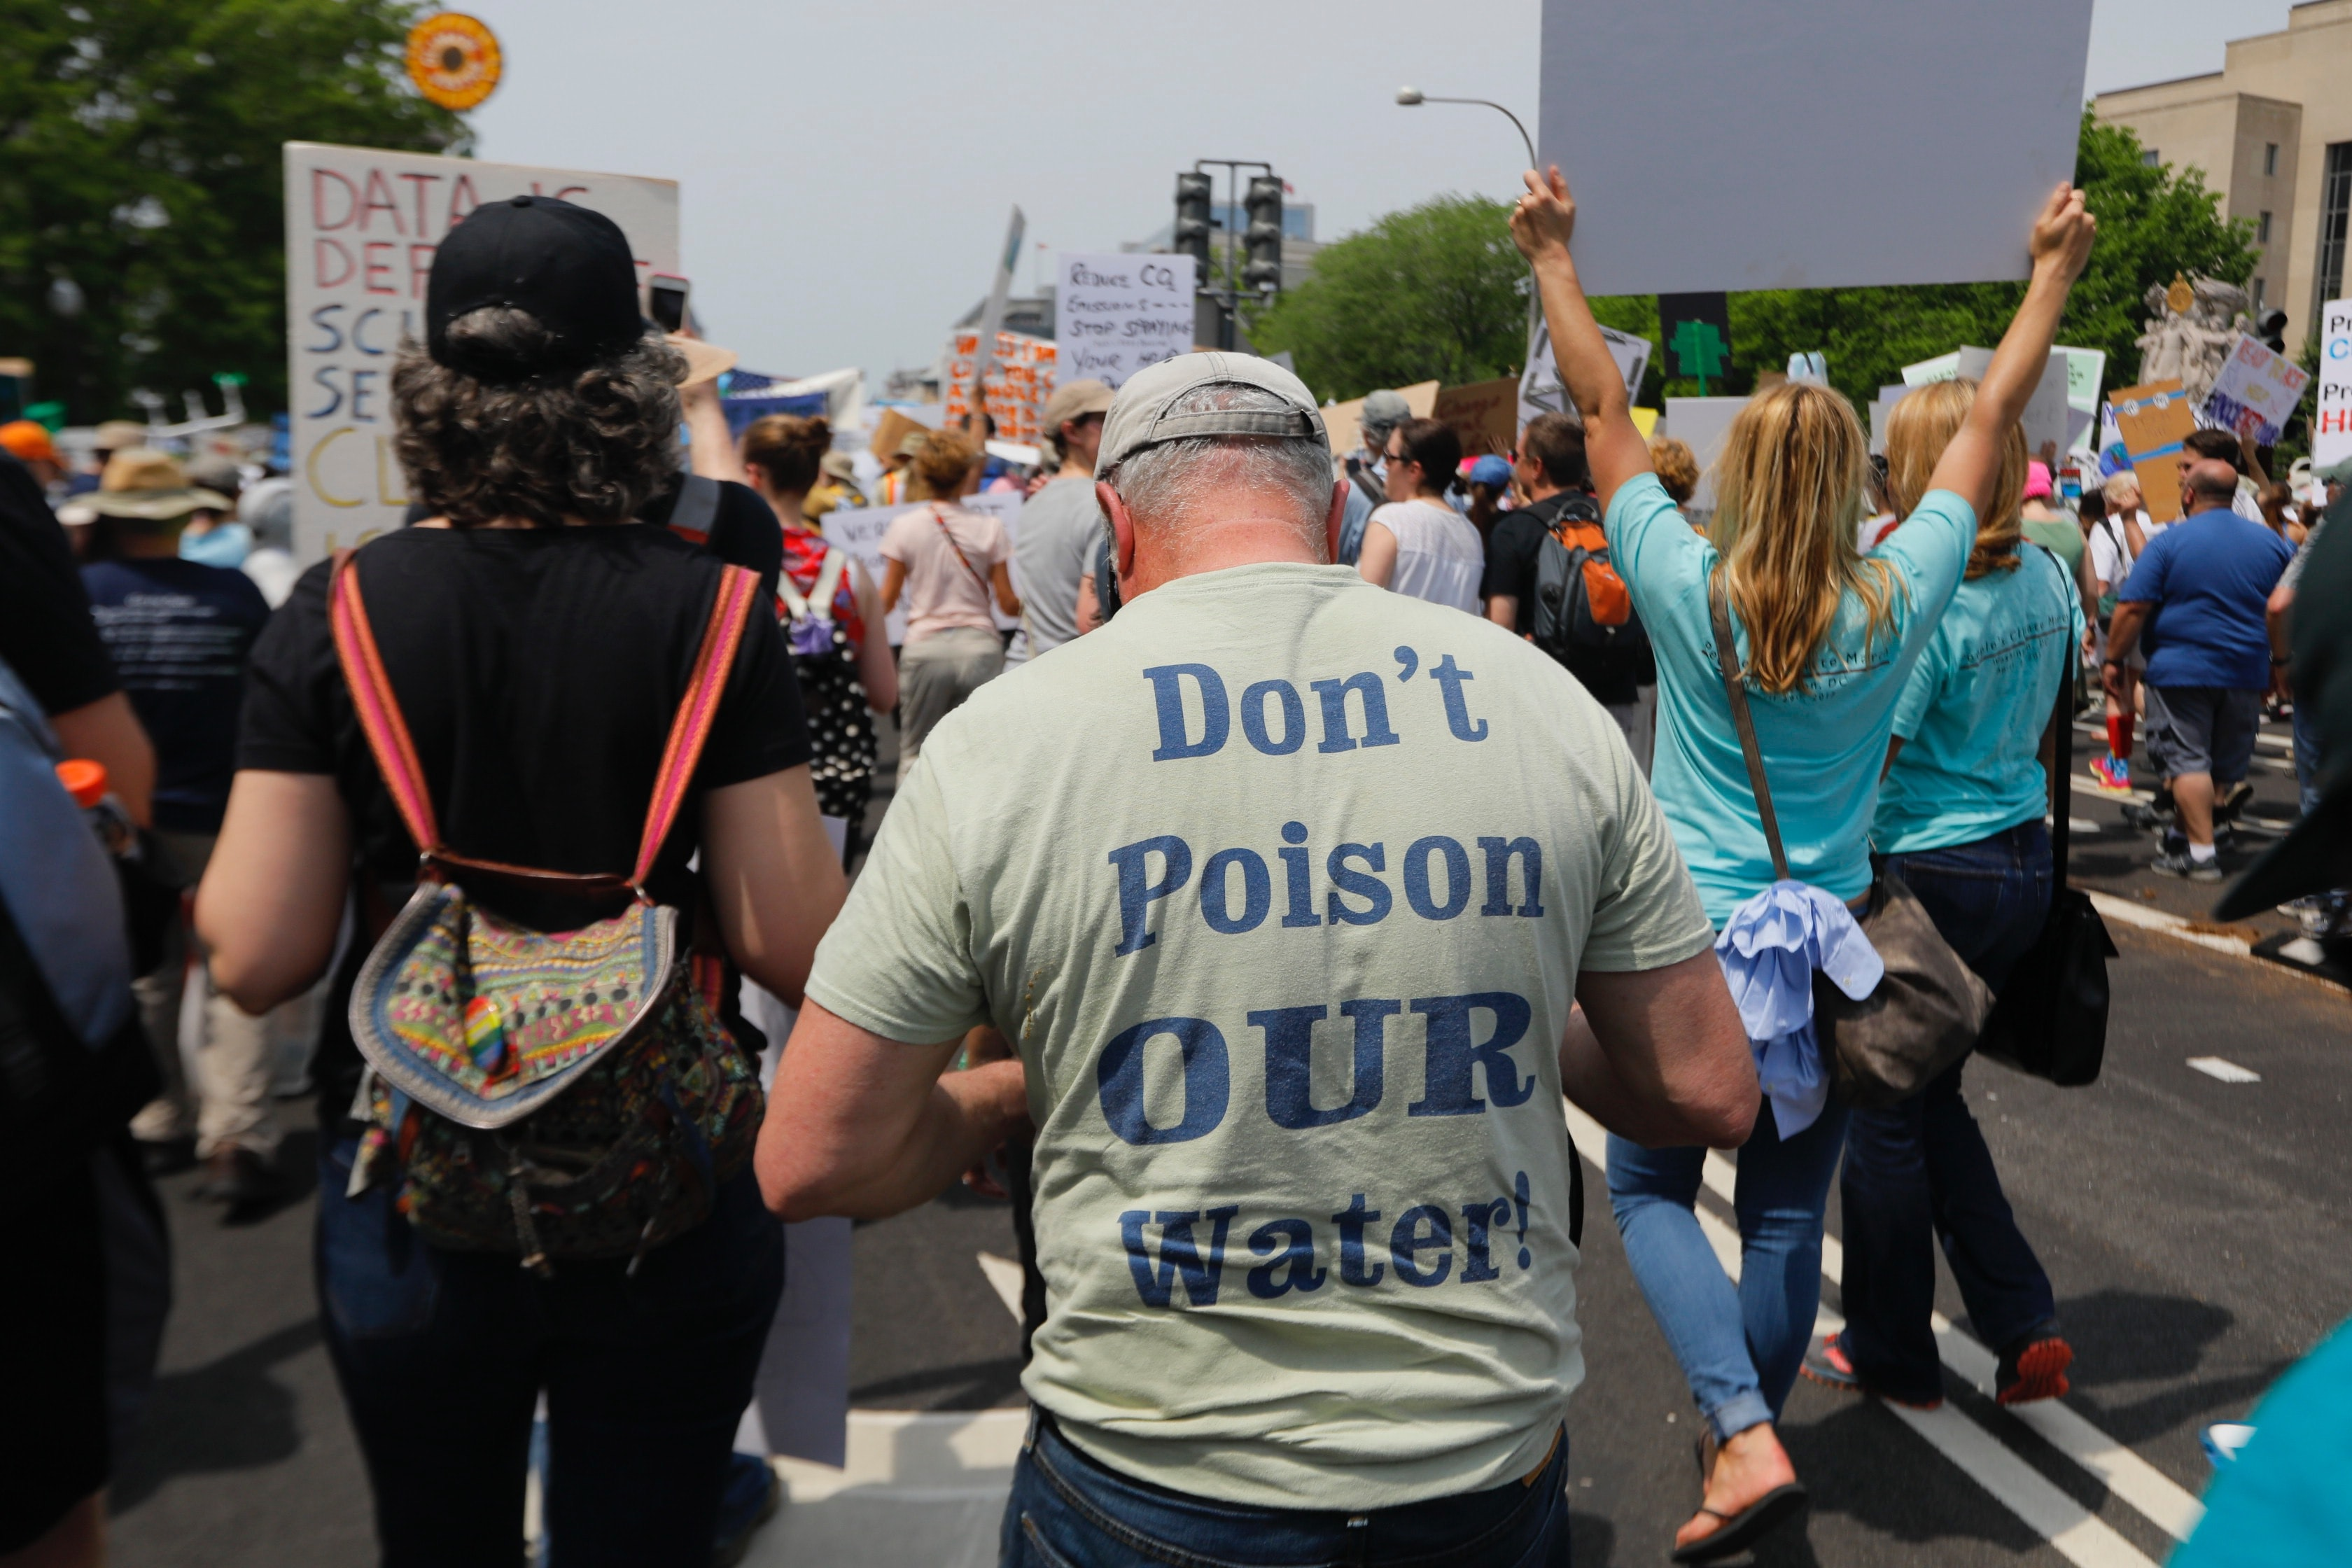 The back view of the street protesters during a rally in Washinton.